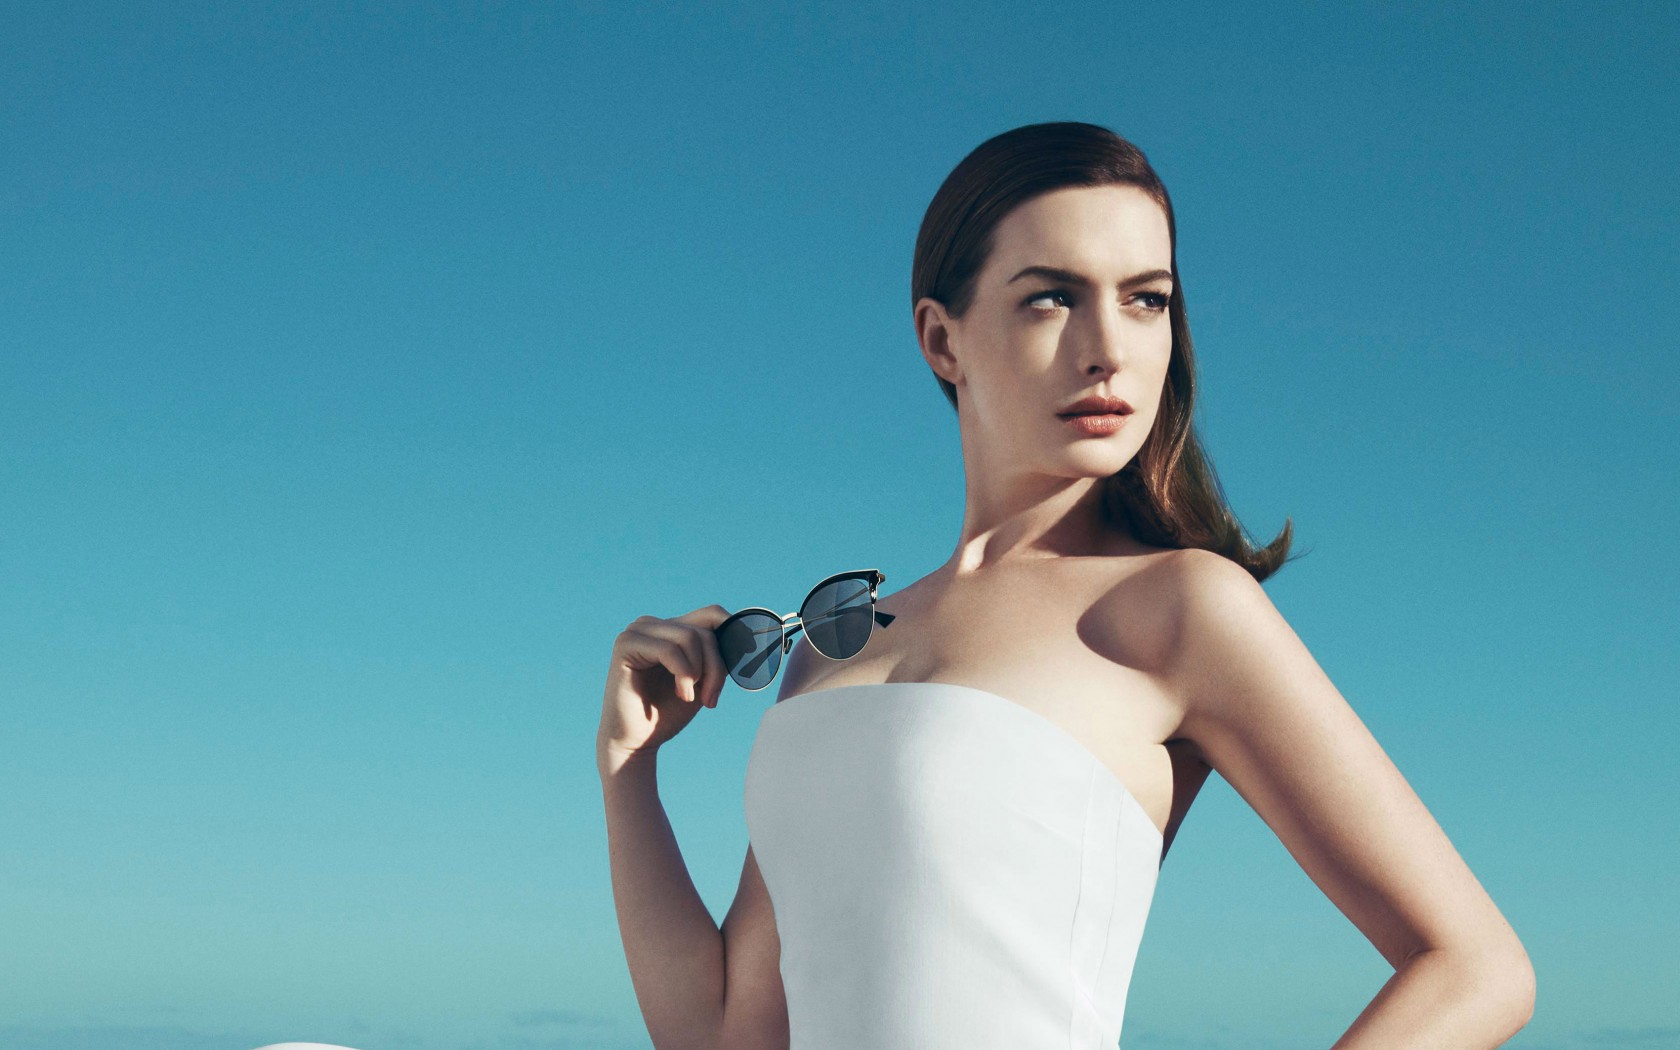 Widescreen Anime Girl Wallpaper Anne Hathaway 2017 Wallpapers Hd Wallpapers Id 20052